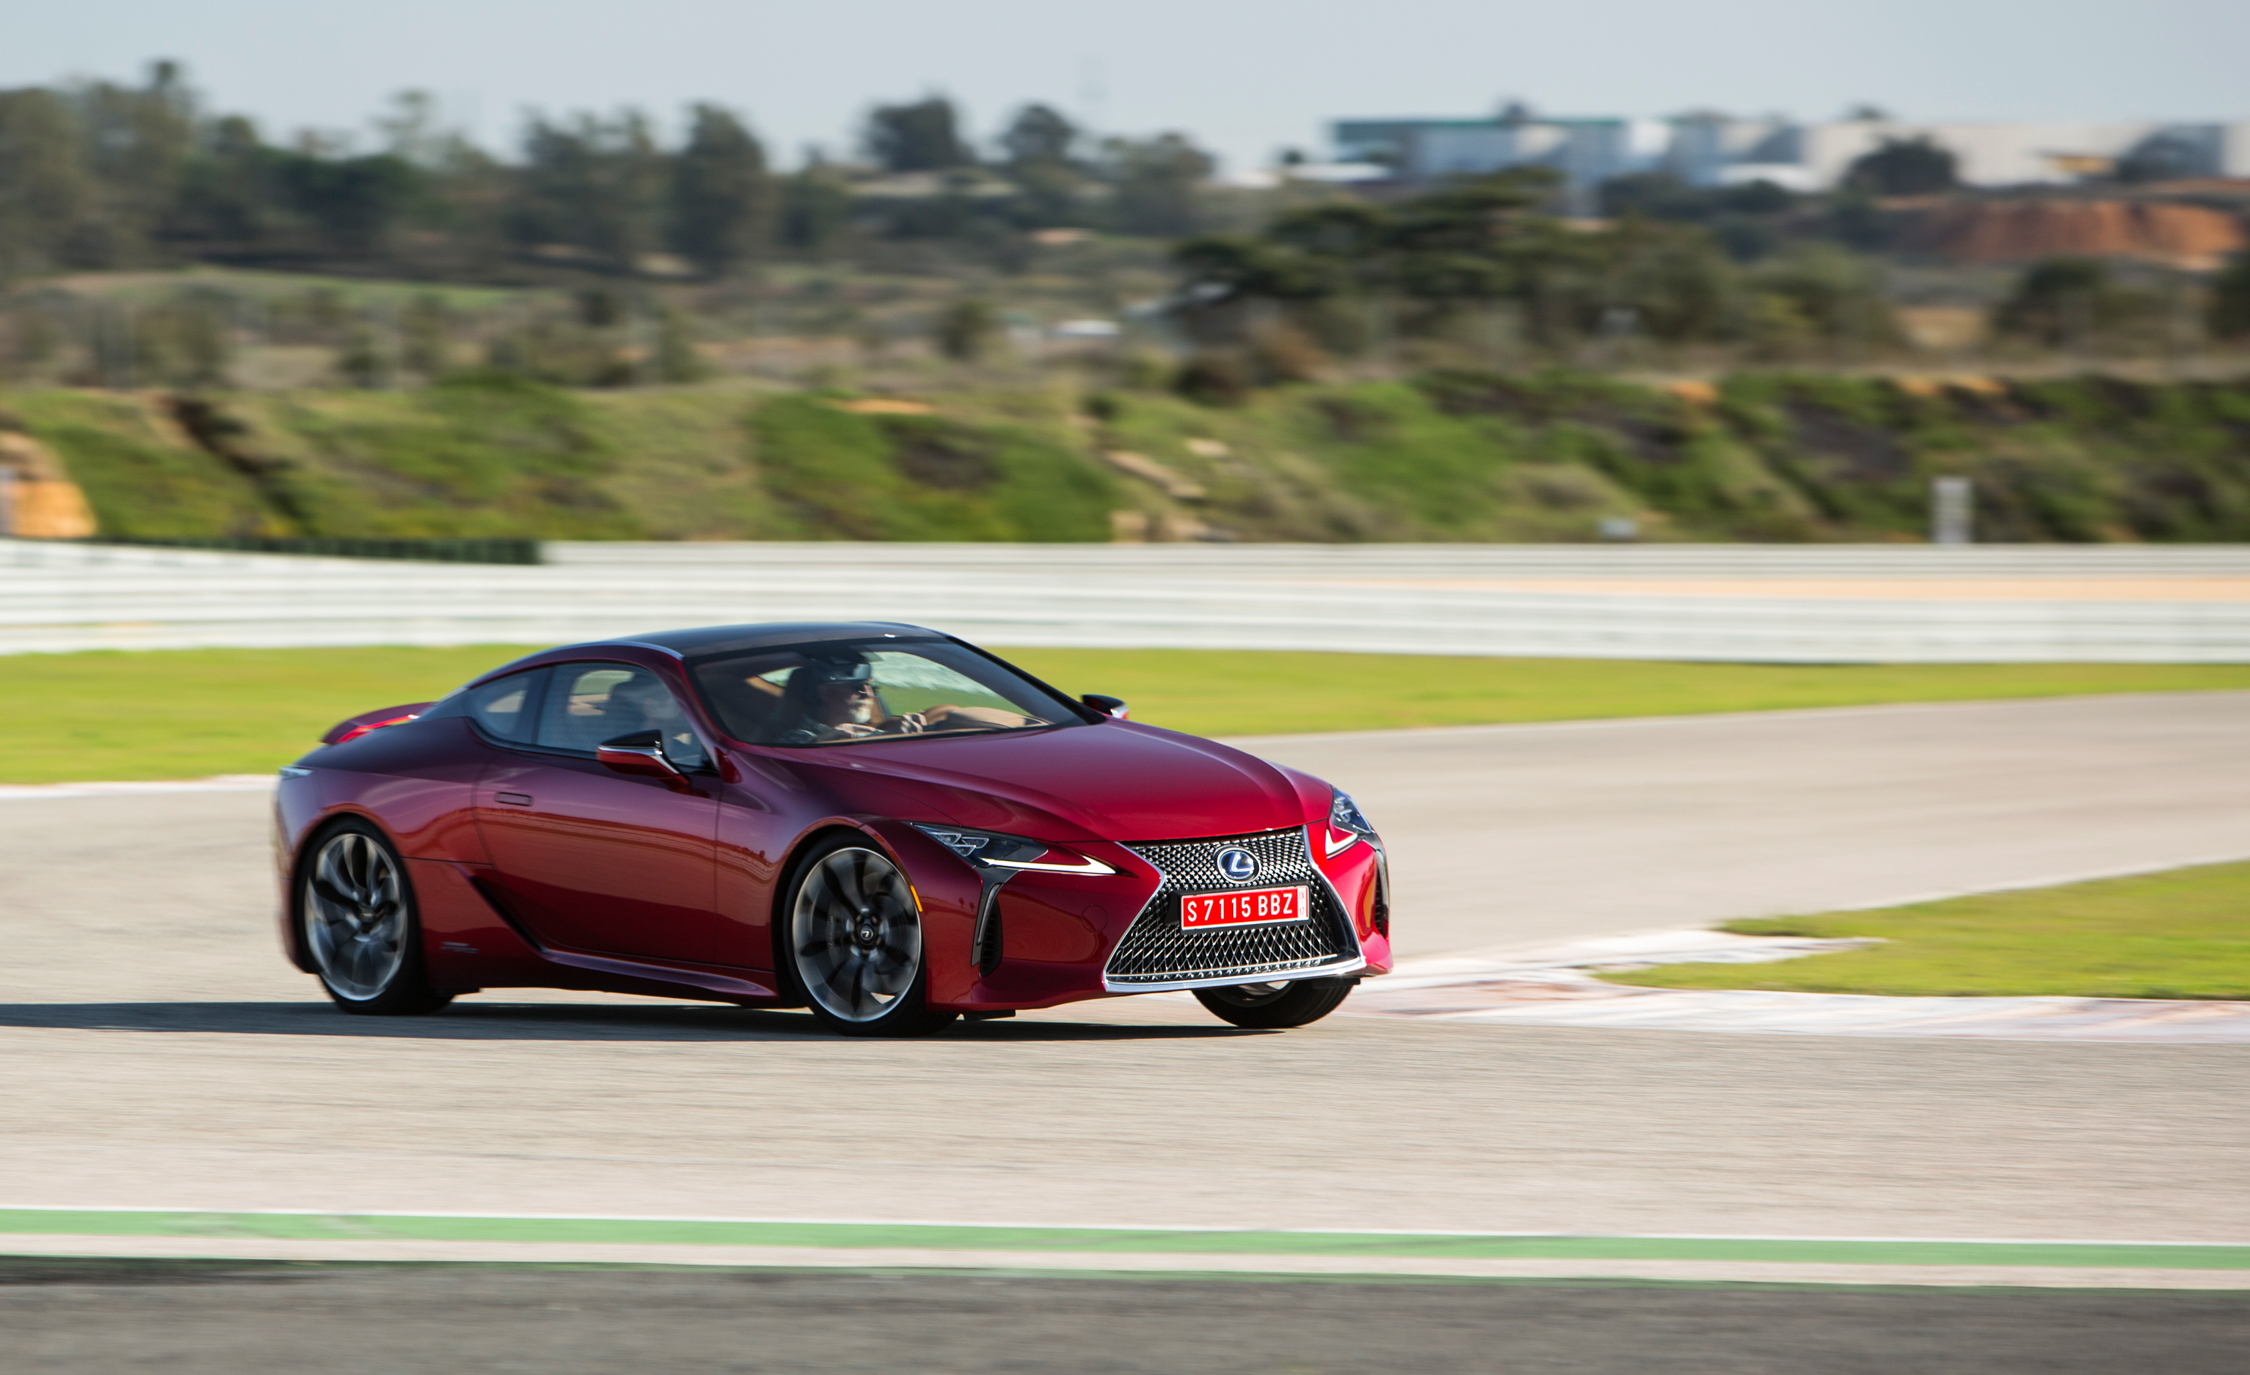 2018 Lexus Lc 500 Red Test Drive (Photo 22 of 84)